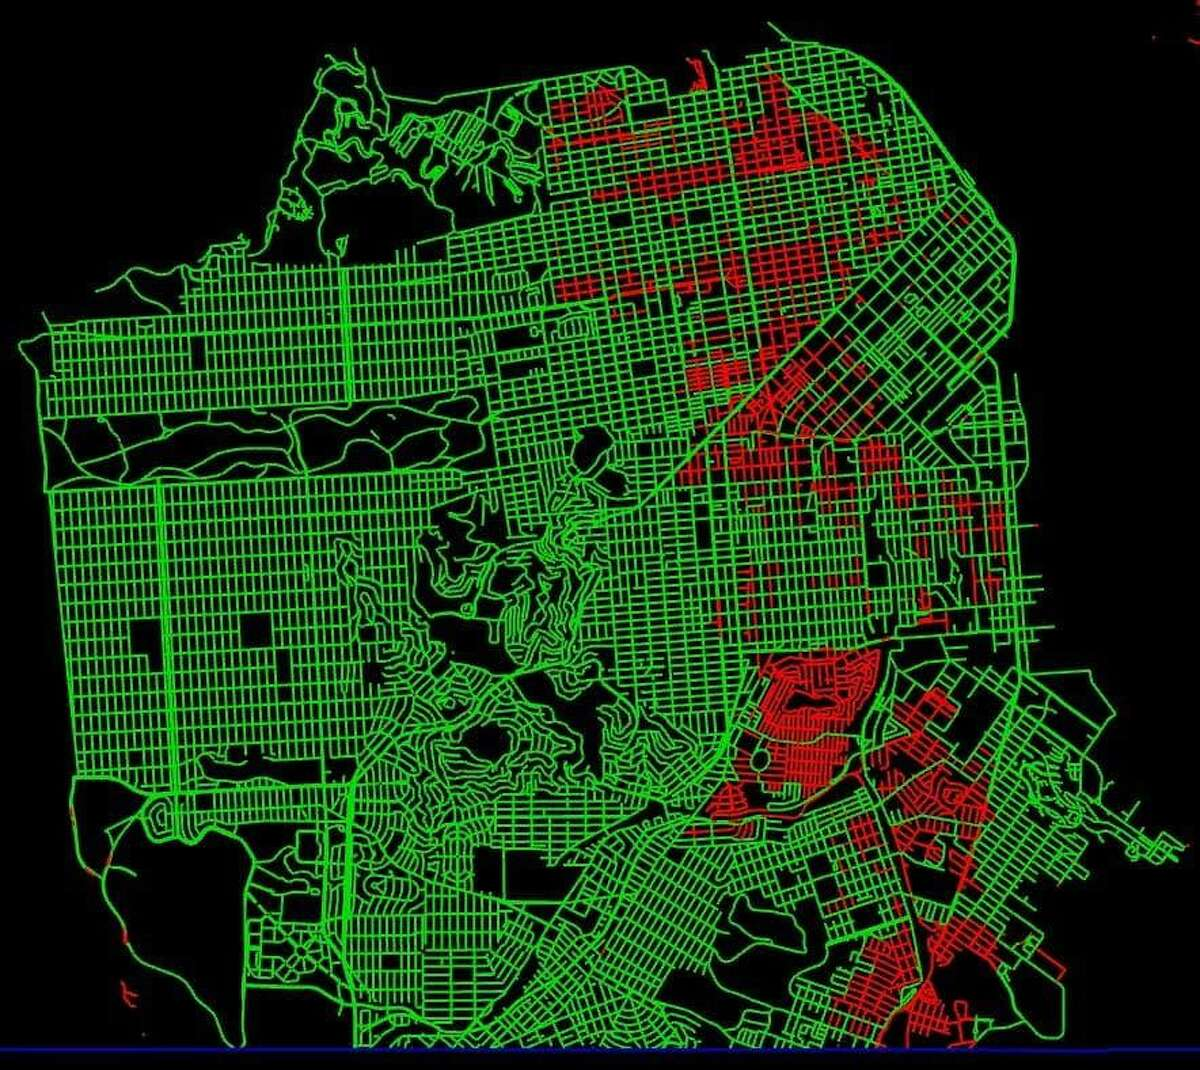 Completing 84% of San Francisco as seen on StreetFerret on March 27.